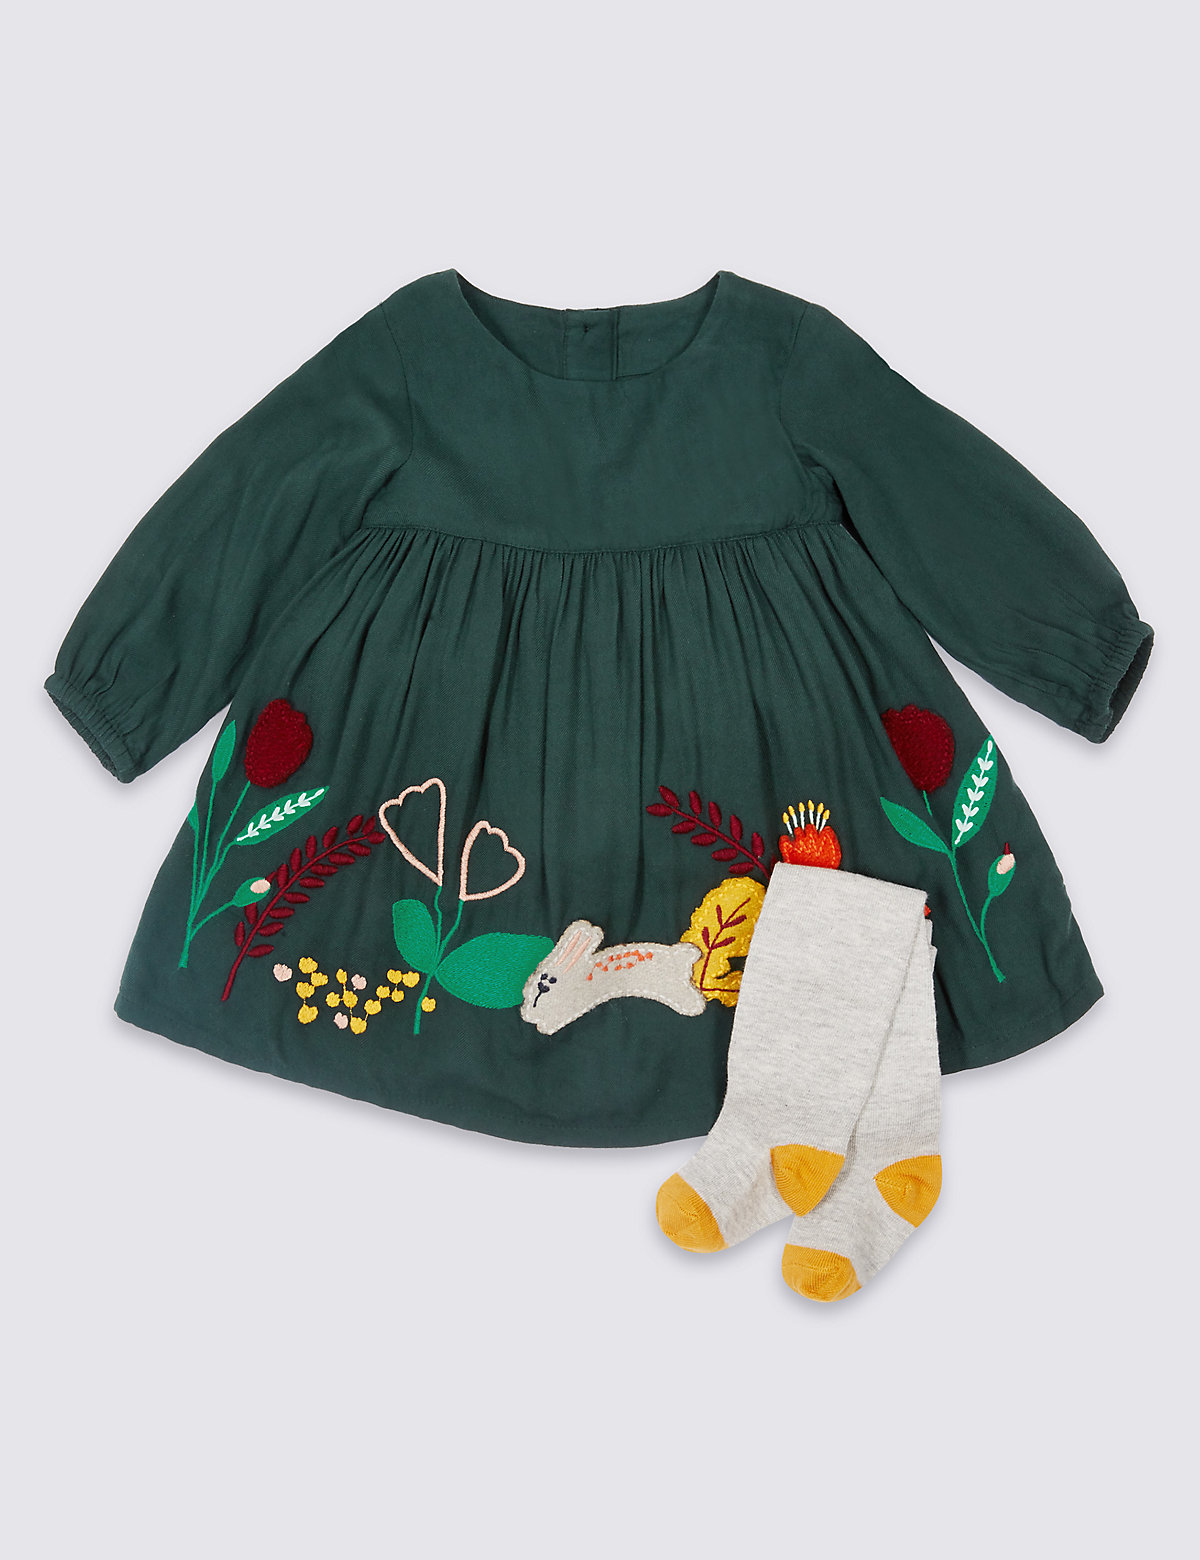 2 Piece Applique Baby Dress with Tights